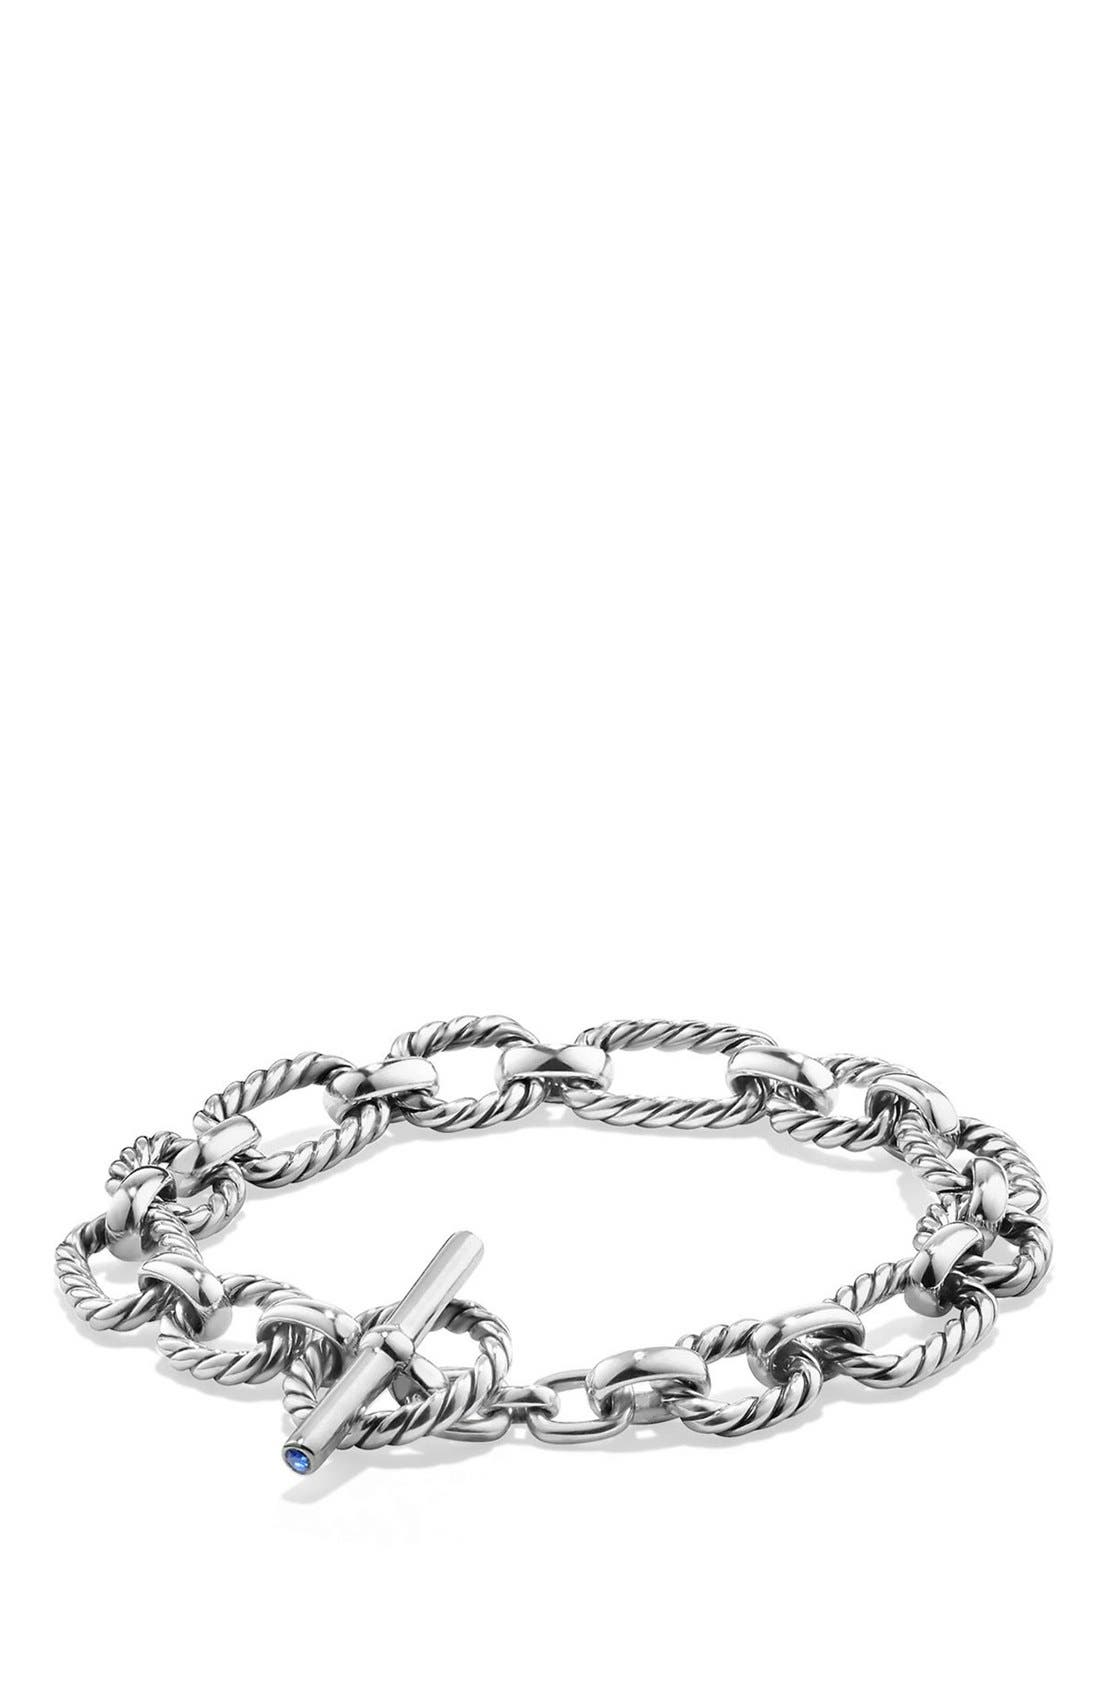 David Yurman Cushion Link Bracelet with Blue Sapphires